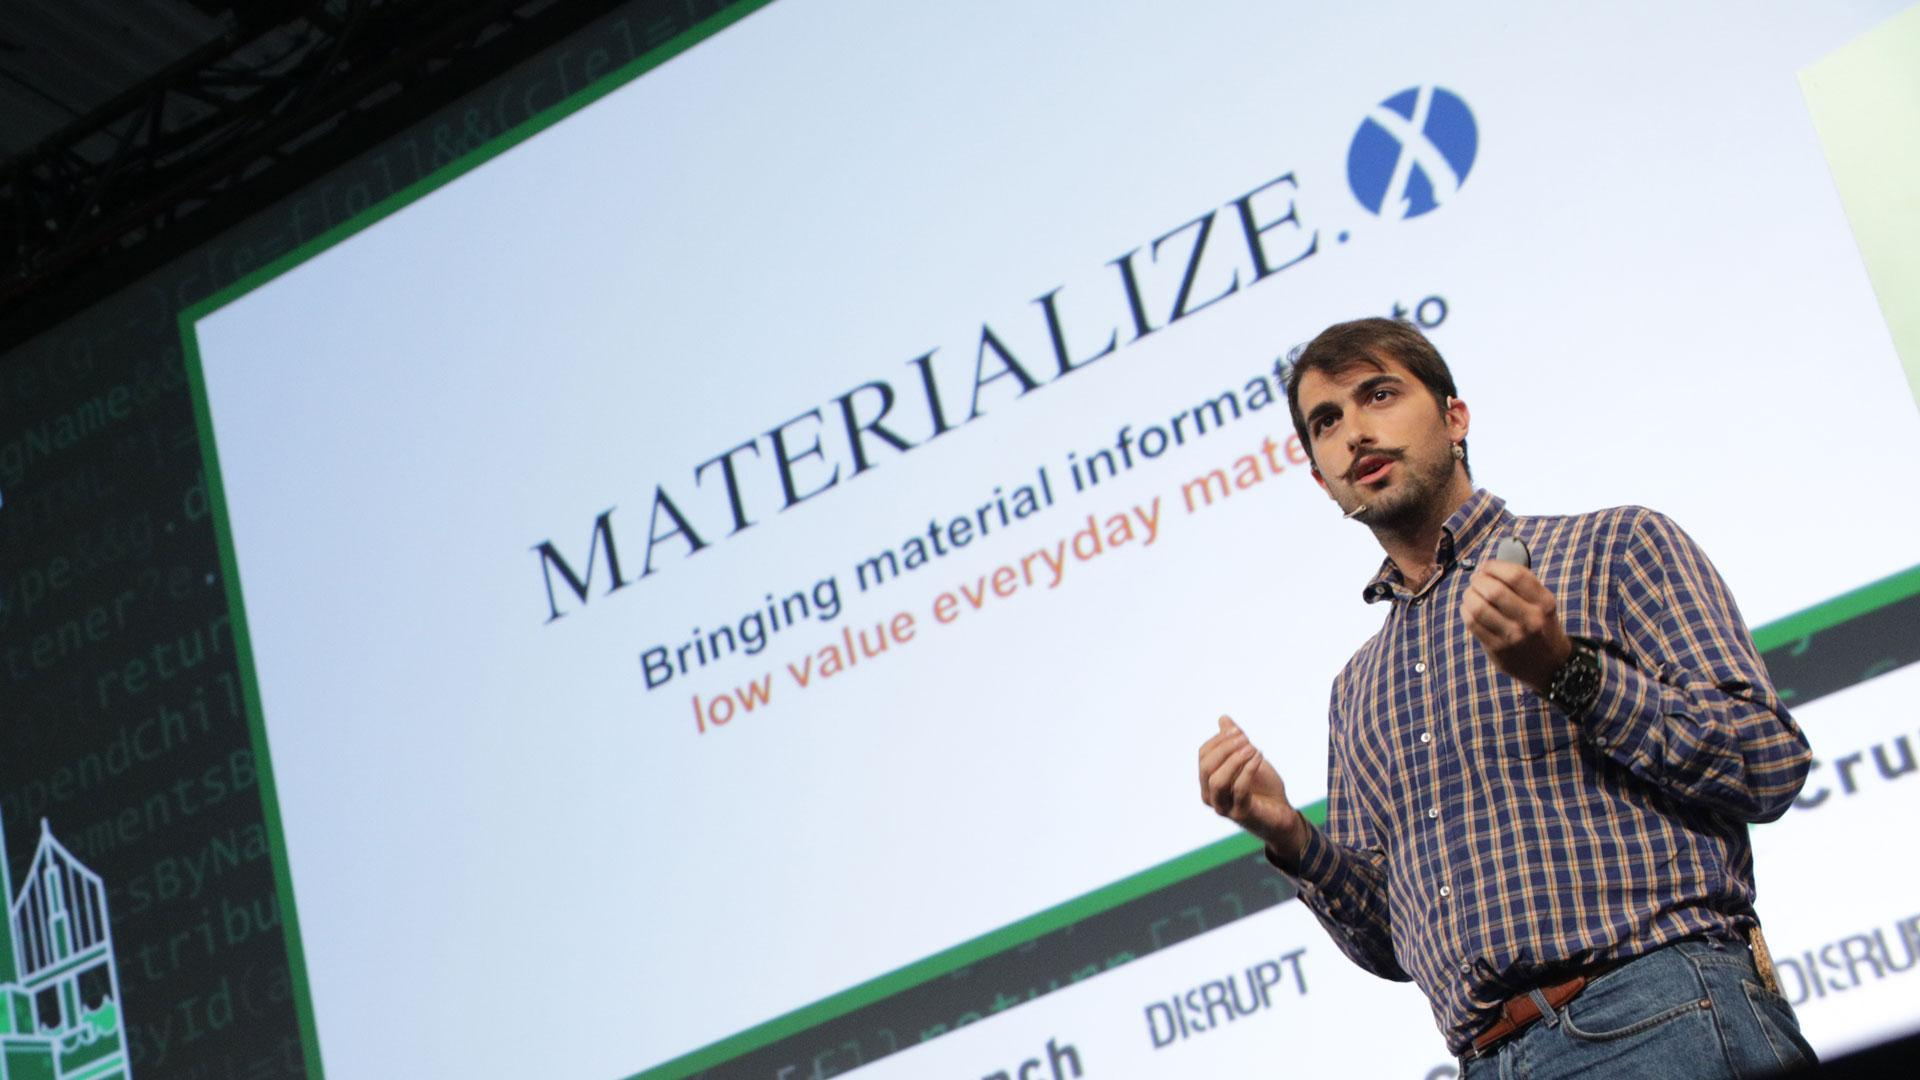 Materialize X: Better Materials Through Machine Learning